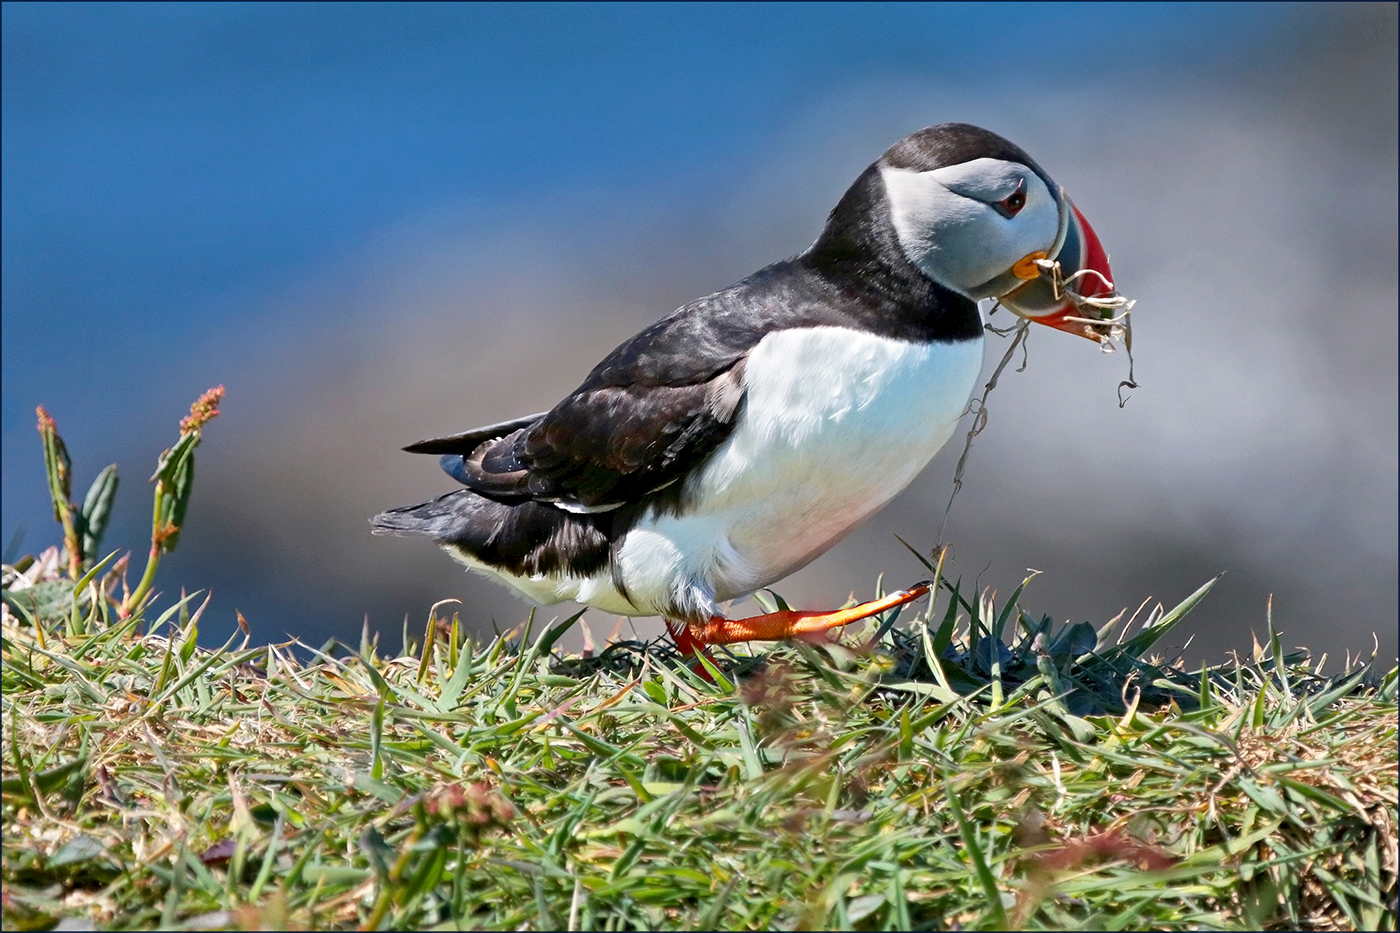 2nd Place - Puffin With Nesting Material by John Butler